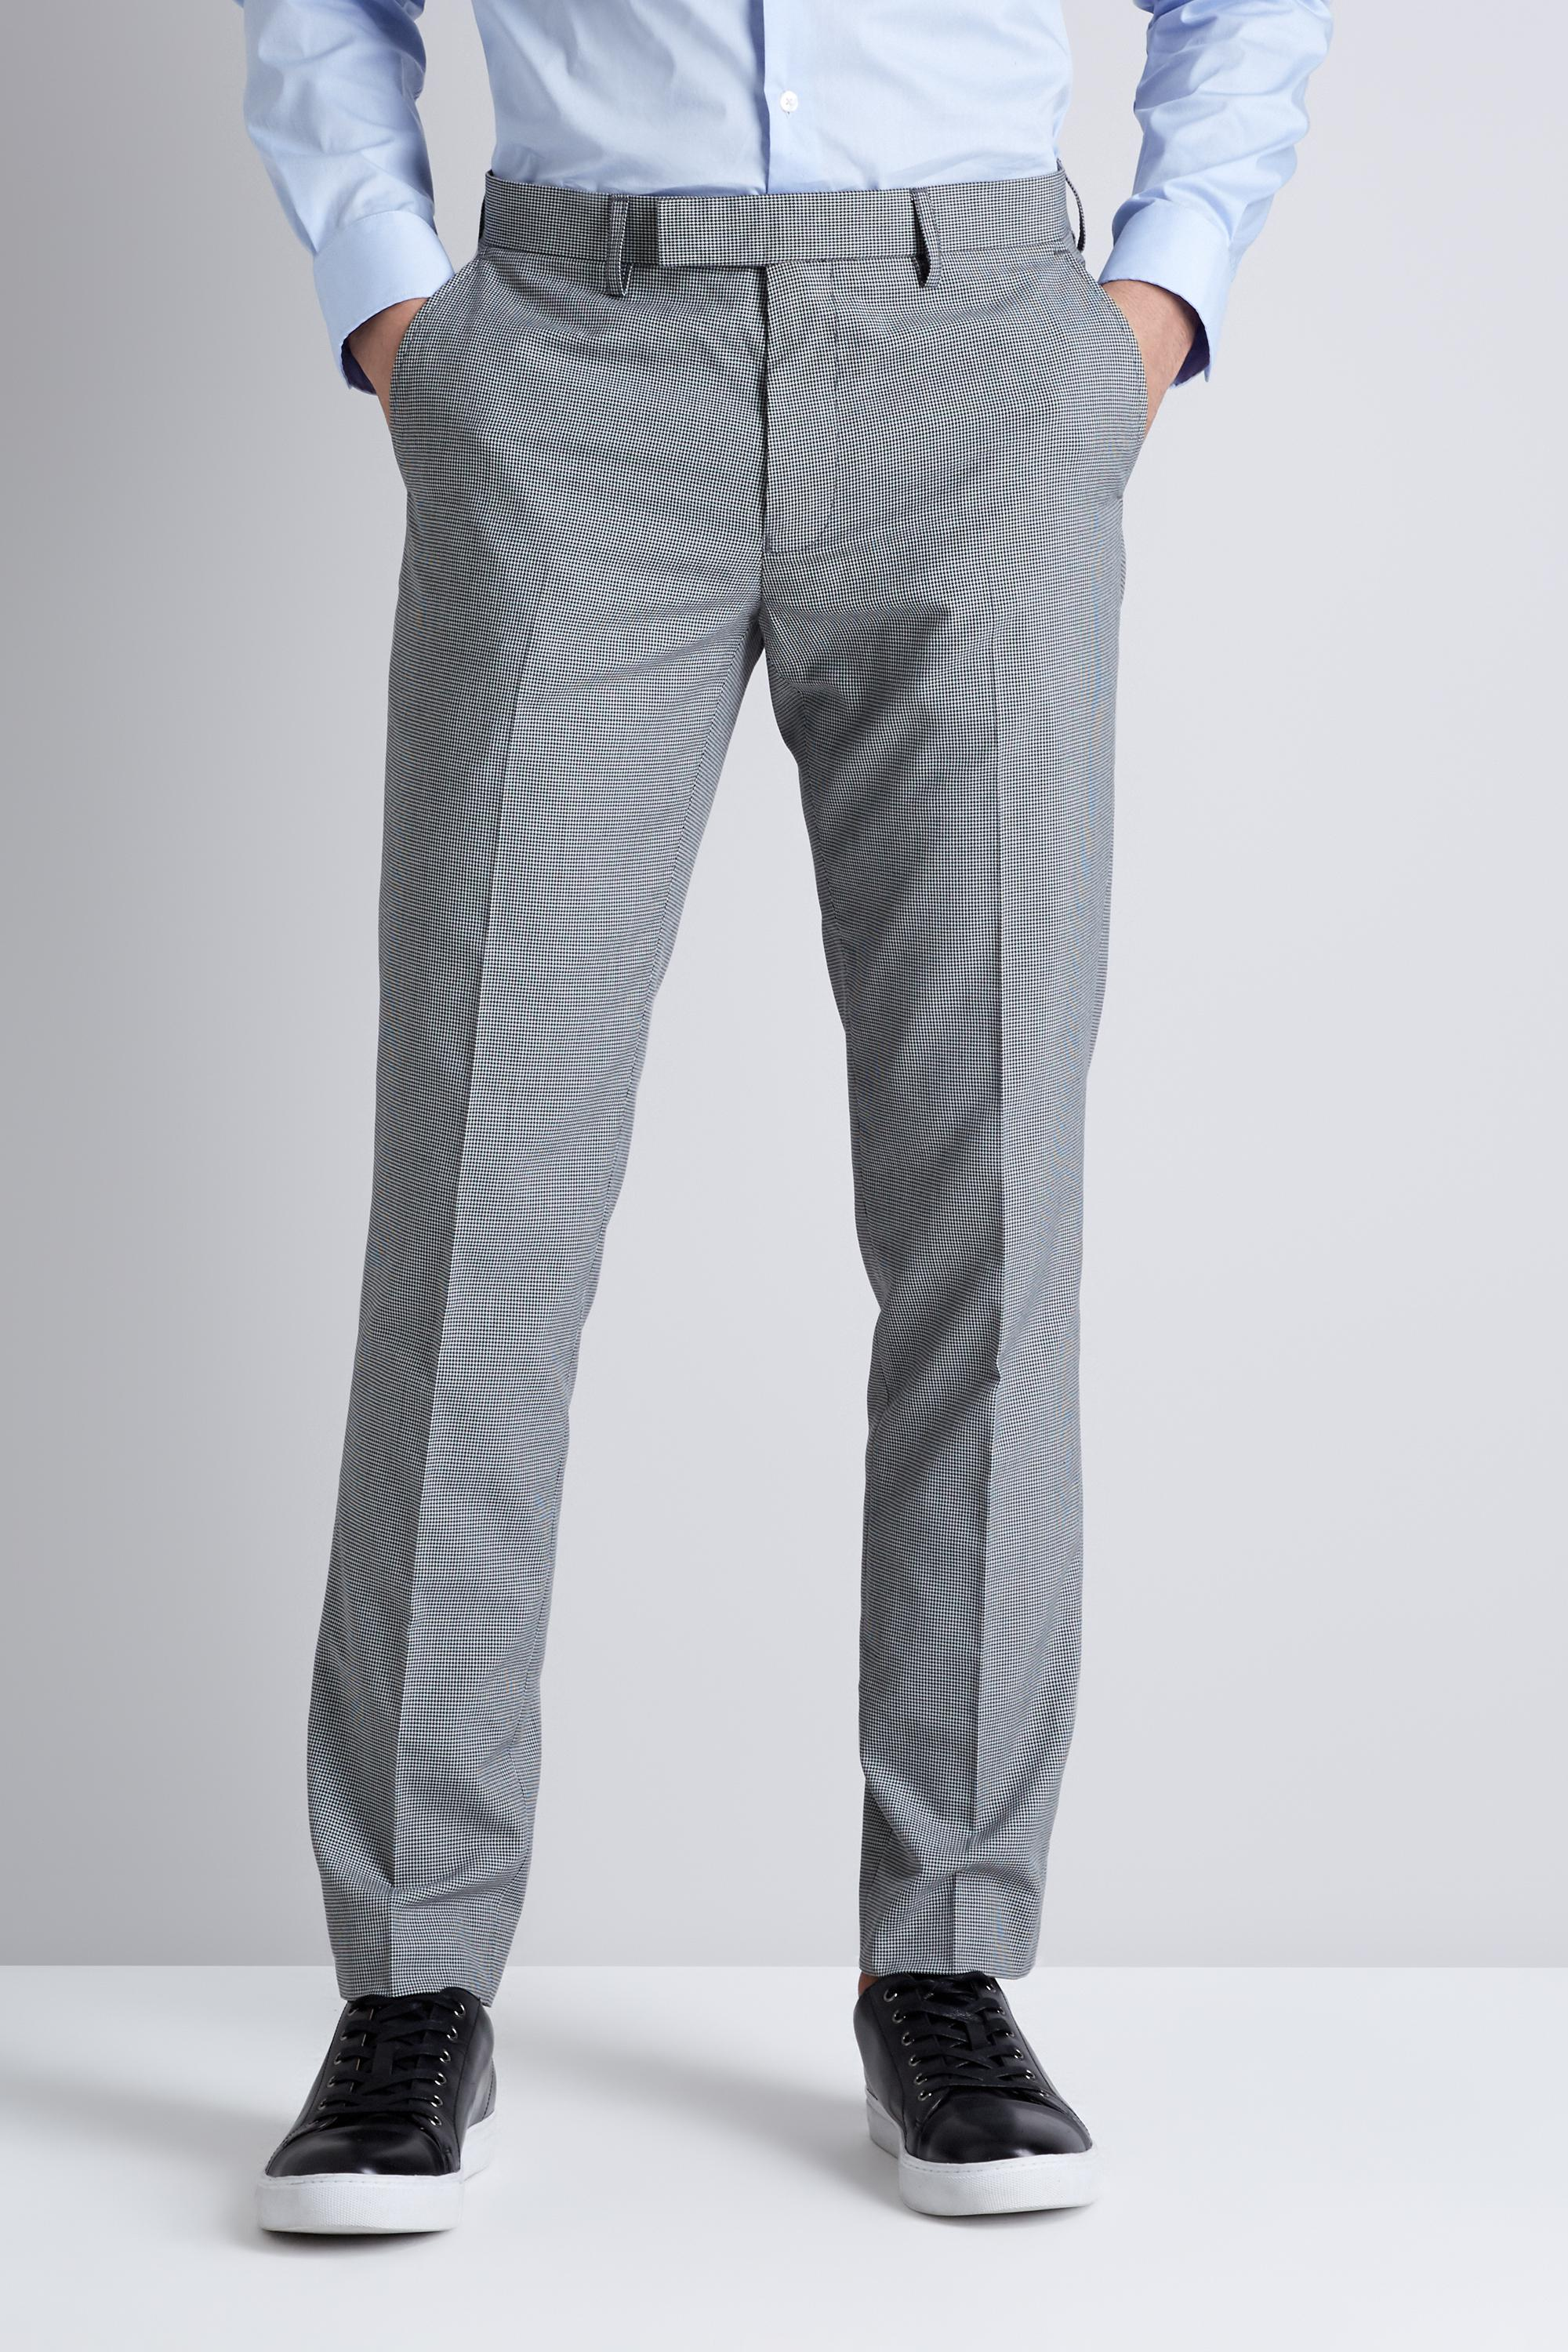 5a9619af434e7 Moss London Skinny Fit Black And White Puppytooth Formal Trousers in ...